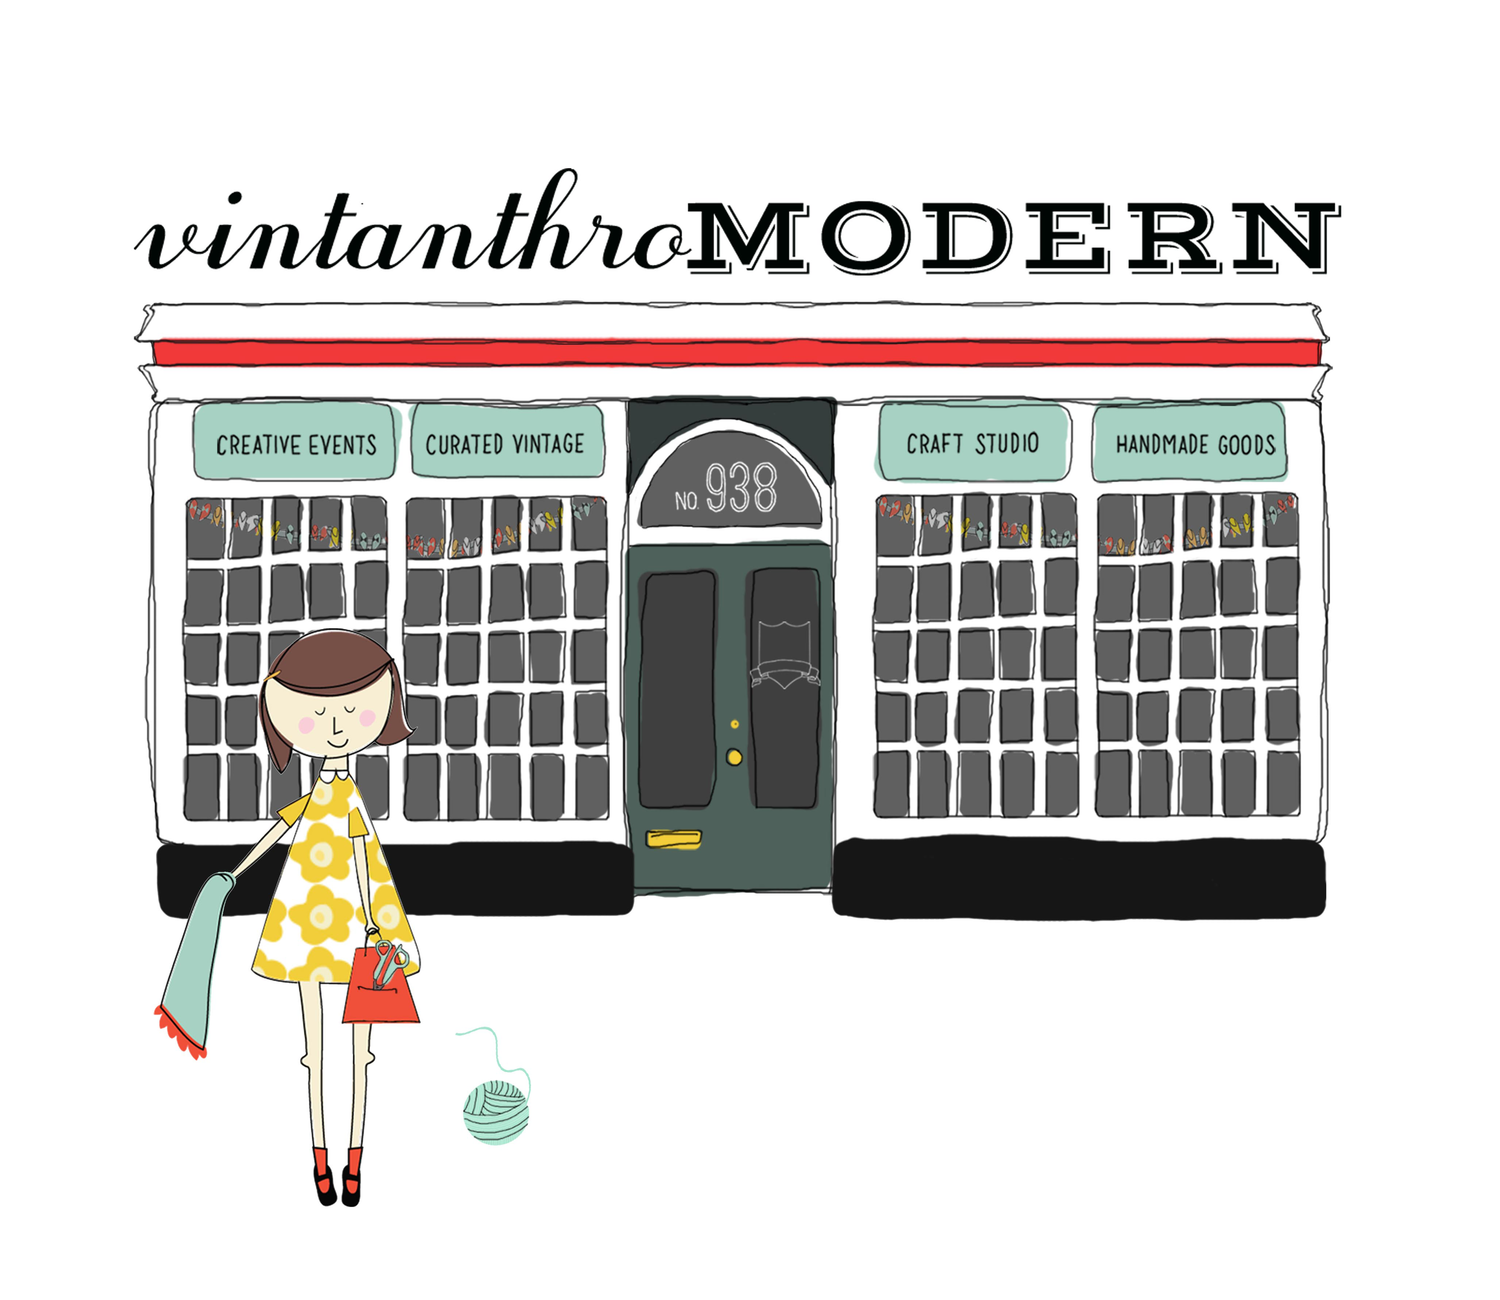 Vintanthromodern: Shop / Gather / Create